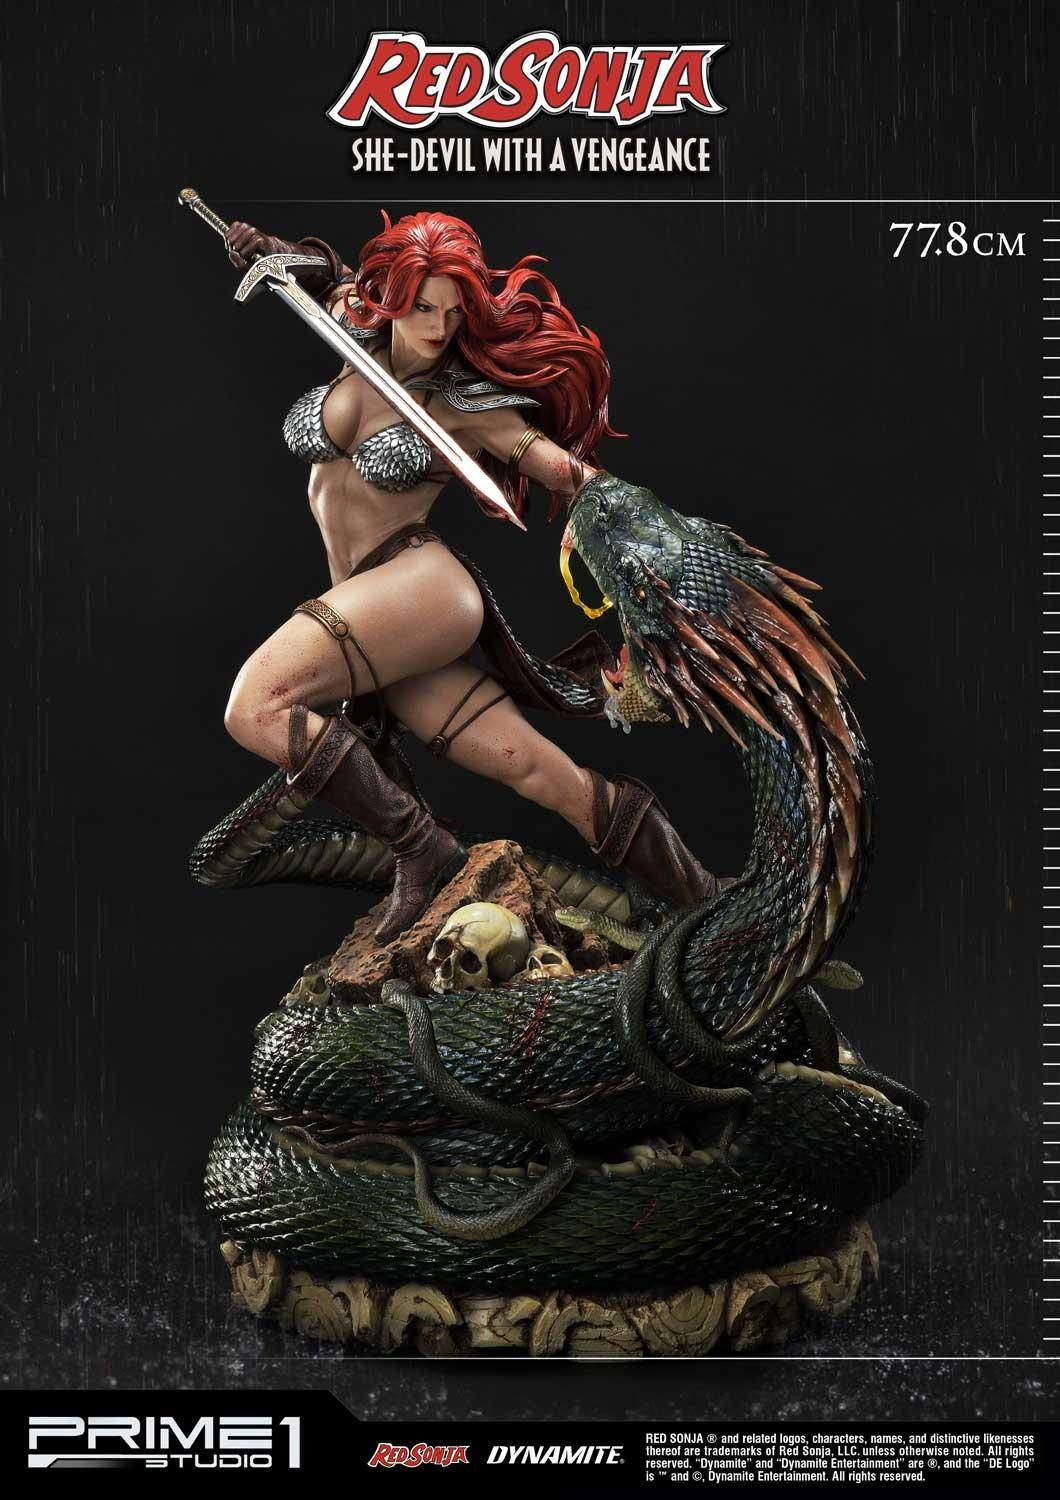 Red Sonja Wants Blood in Upcoming Prime 1 Studios Statue